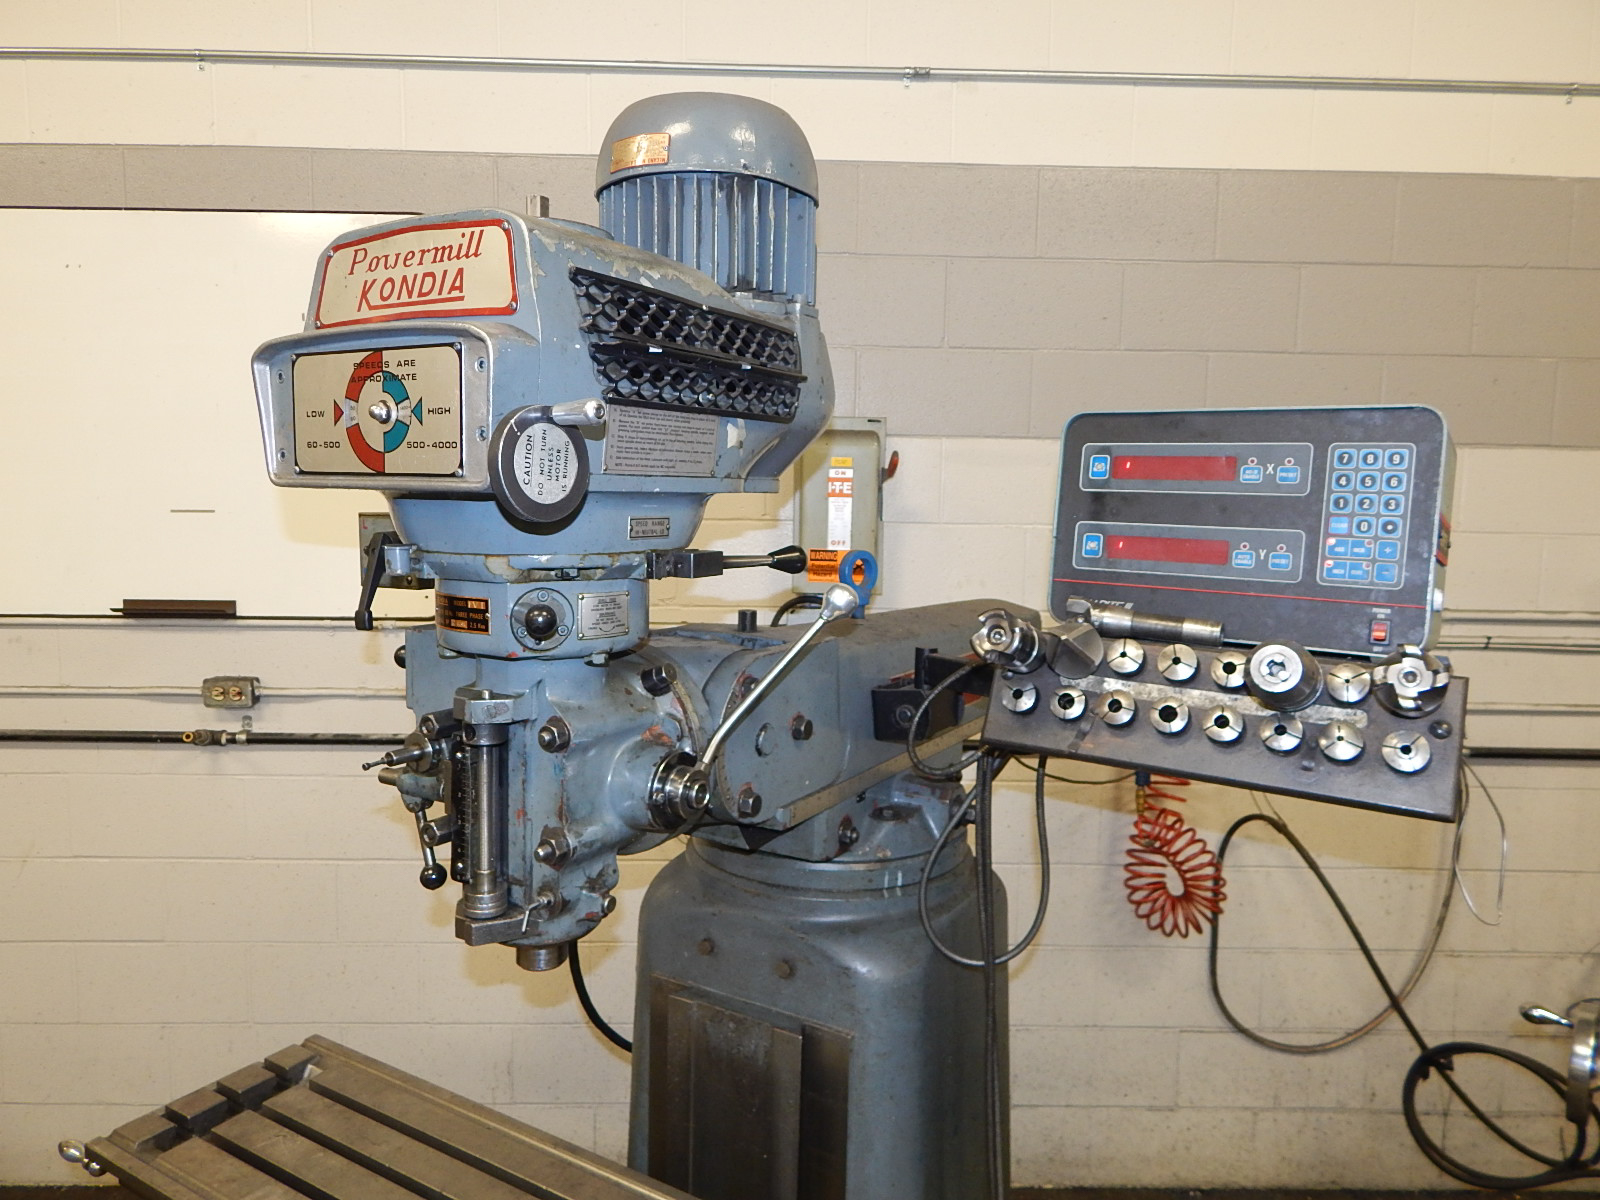 """KONDIA FV-1 VERTICAL TURRET MILL WITH 48""""X12"""" TABLE, SPEEDS TO 4000 RPM, ACCURITE III 2 AXIS DRO, - Image 2 of 2"""